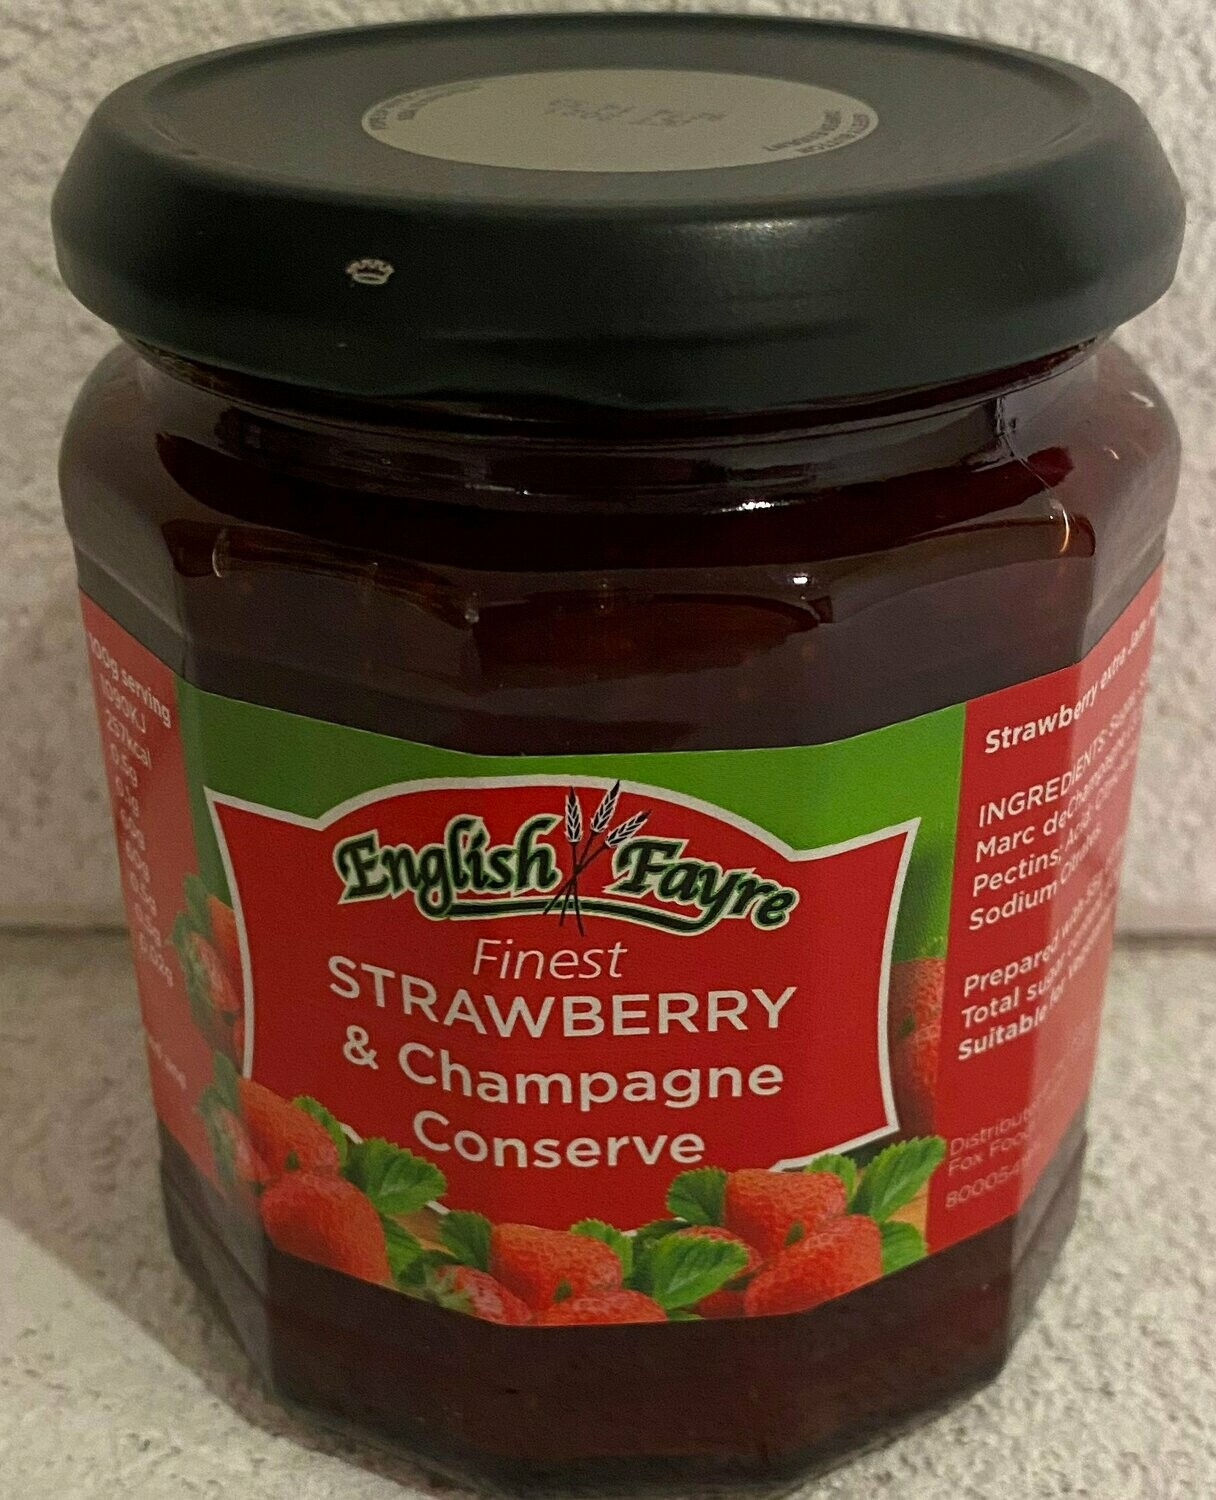 English Fayre Strawberry & Champagne Conserve 340g